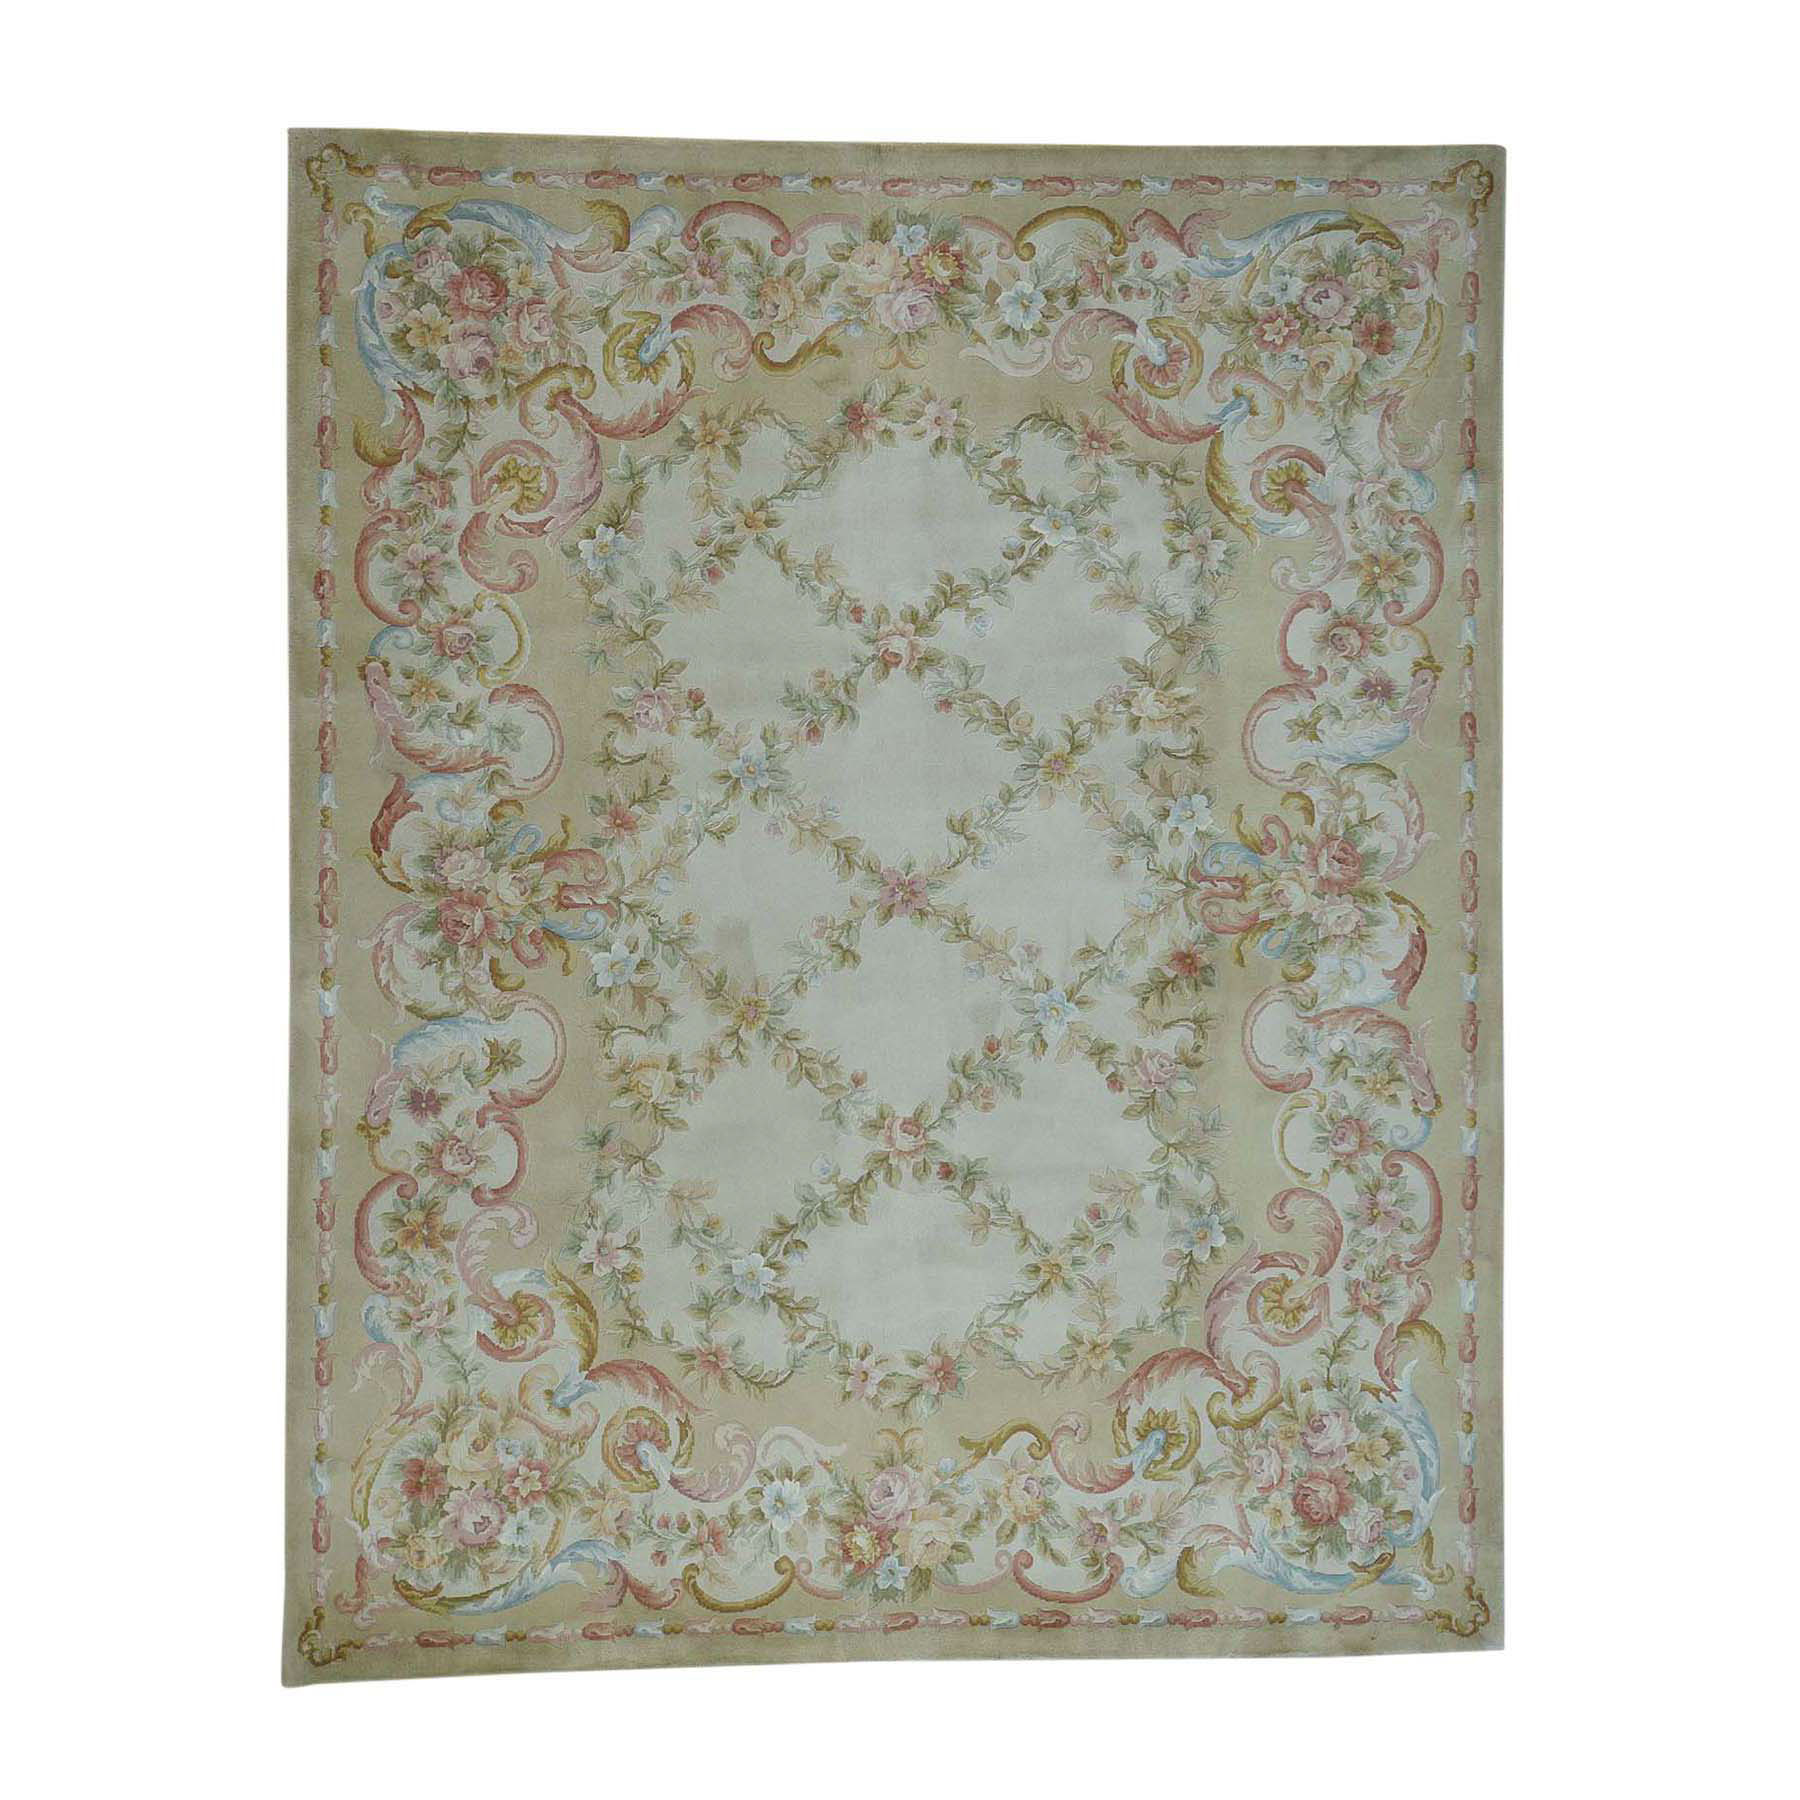 8'x10' Savonnerie Floral Trellis Design Thick And Plush Hand Woven Oriental Rug